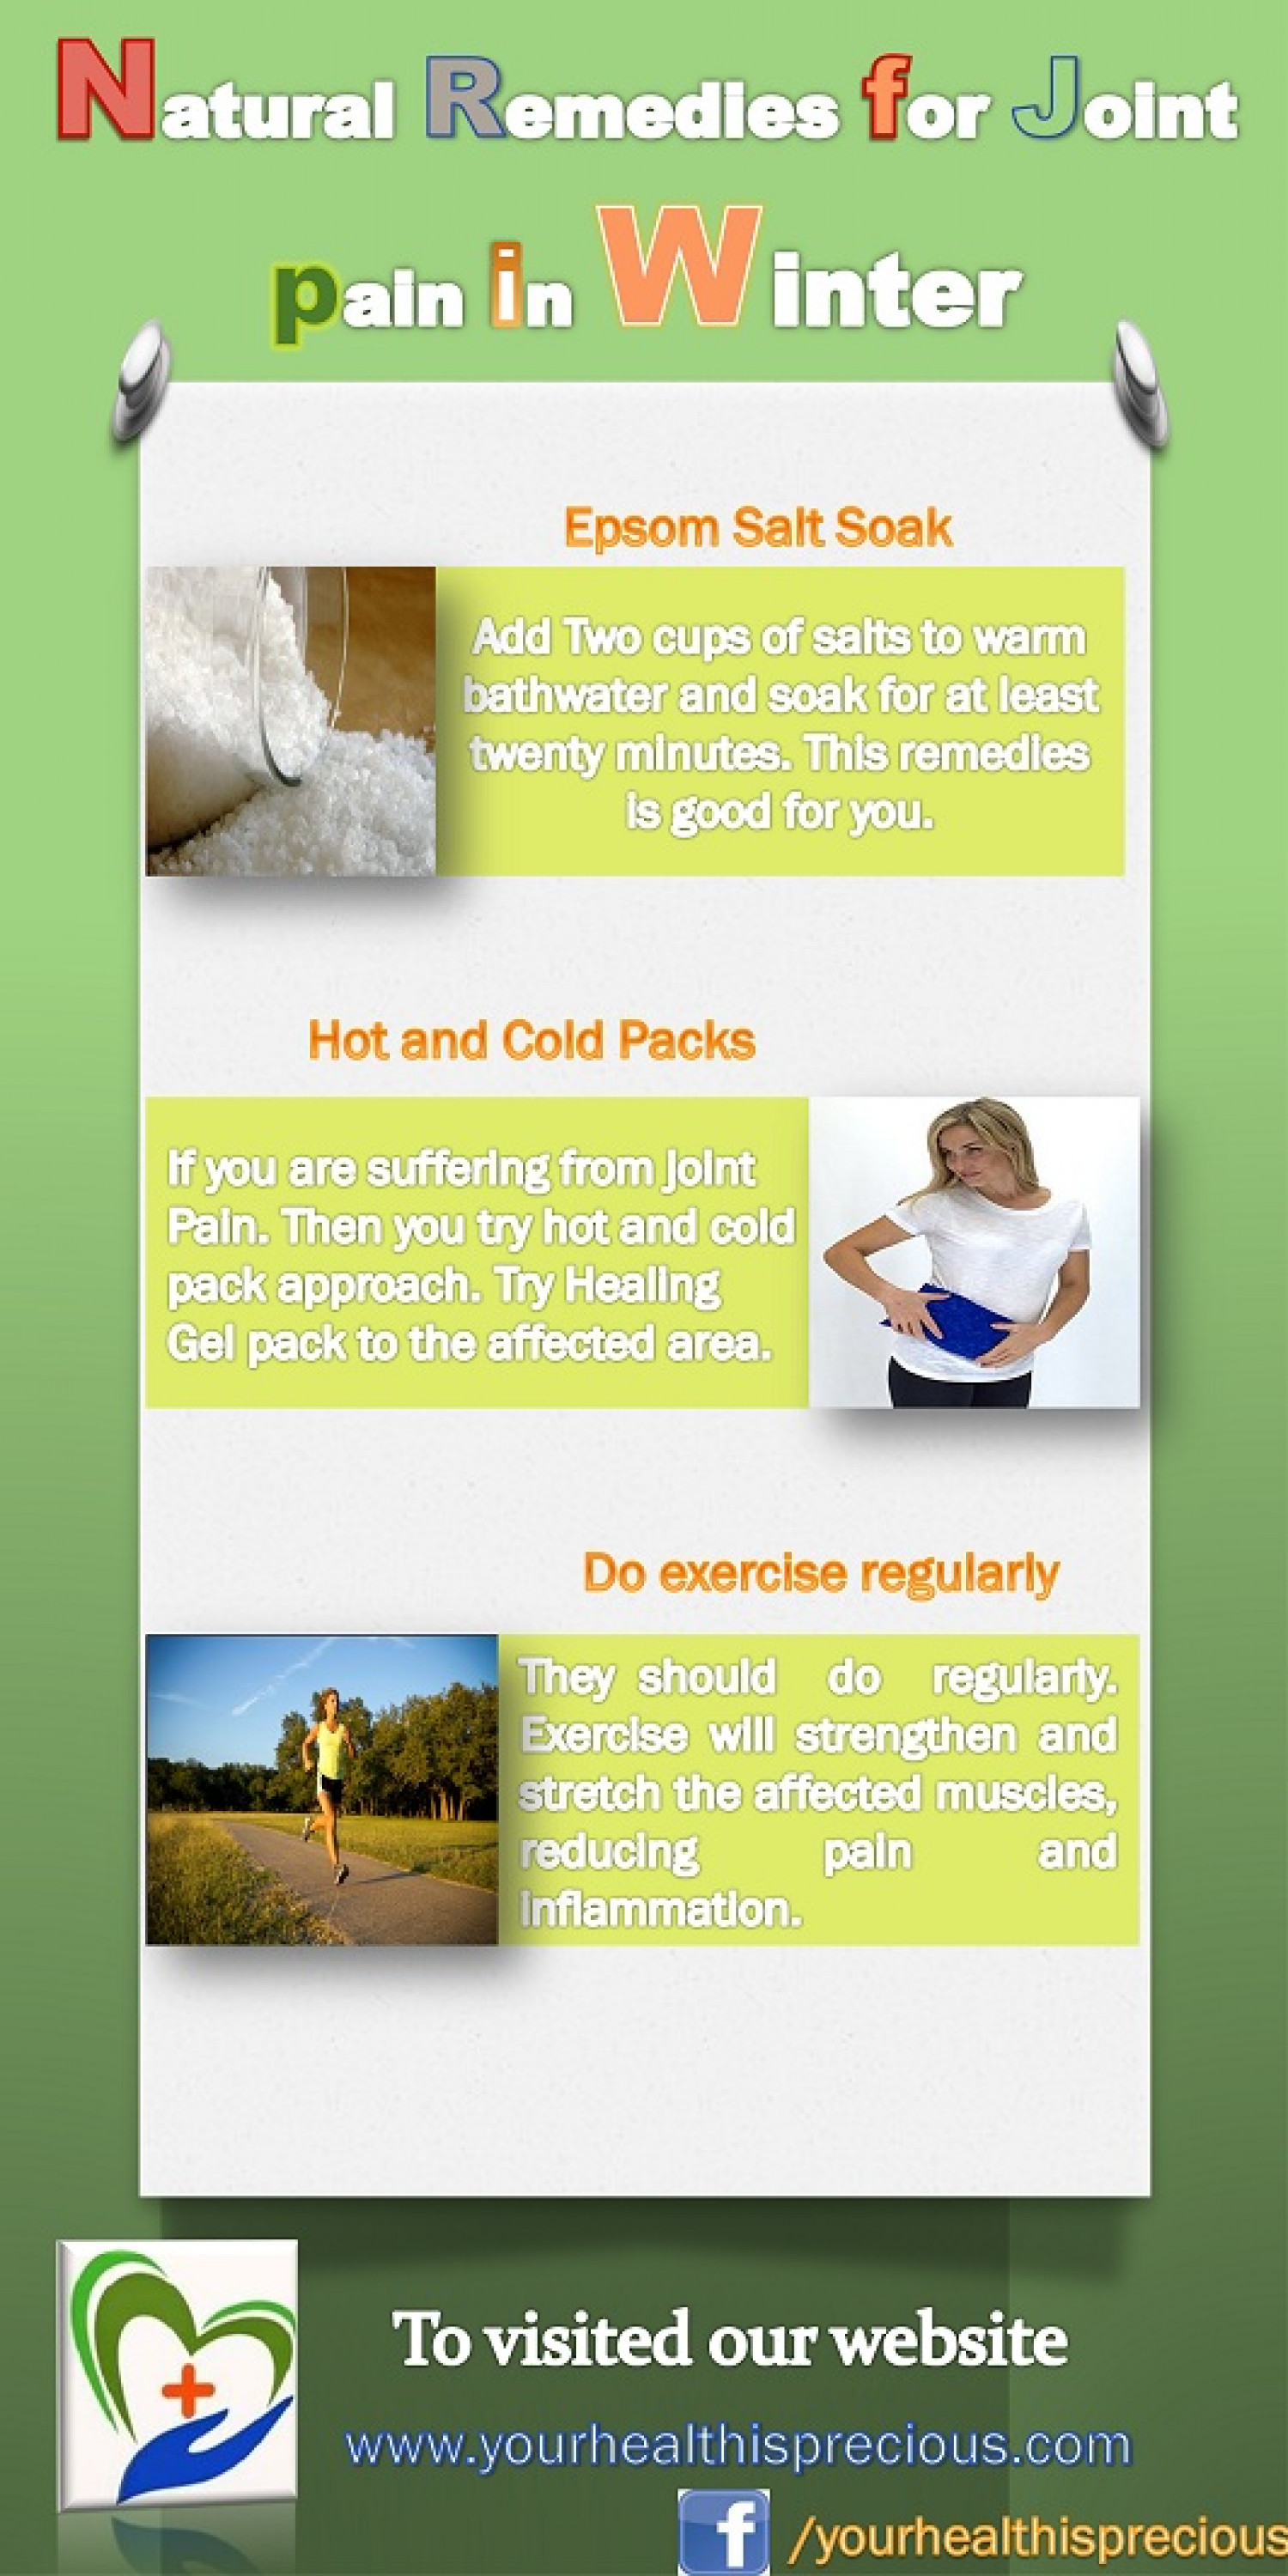 Natural remedies for joint pain in winter Infographic